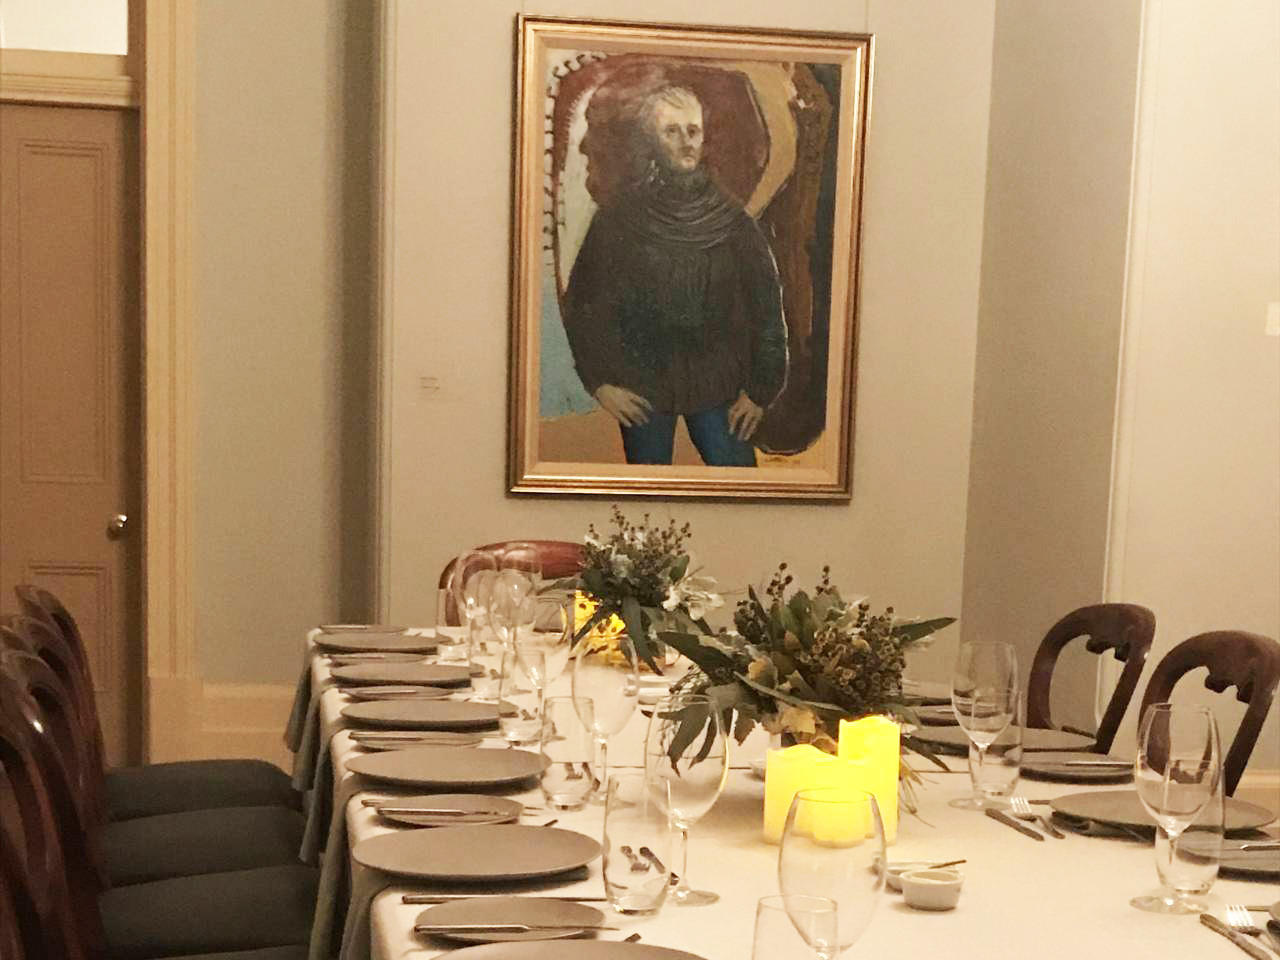 A Long Table With Chairs Setup For A Private Dinner With A Painting Of A Man In The Wall Inside The Function Room